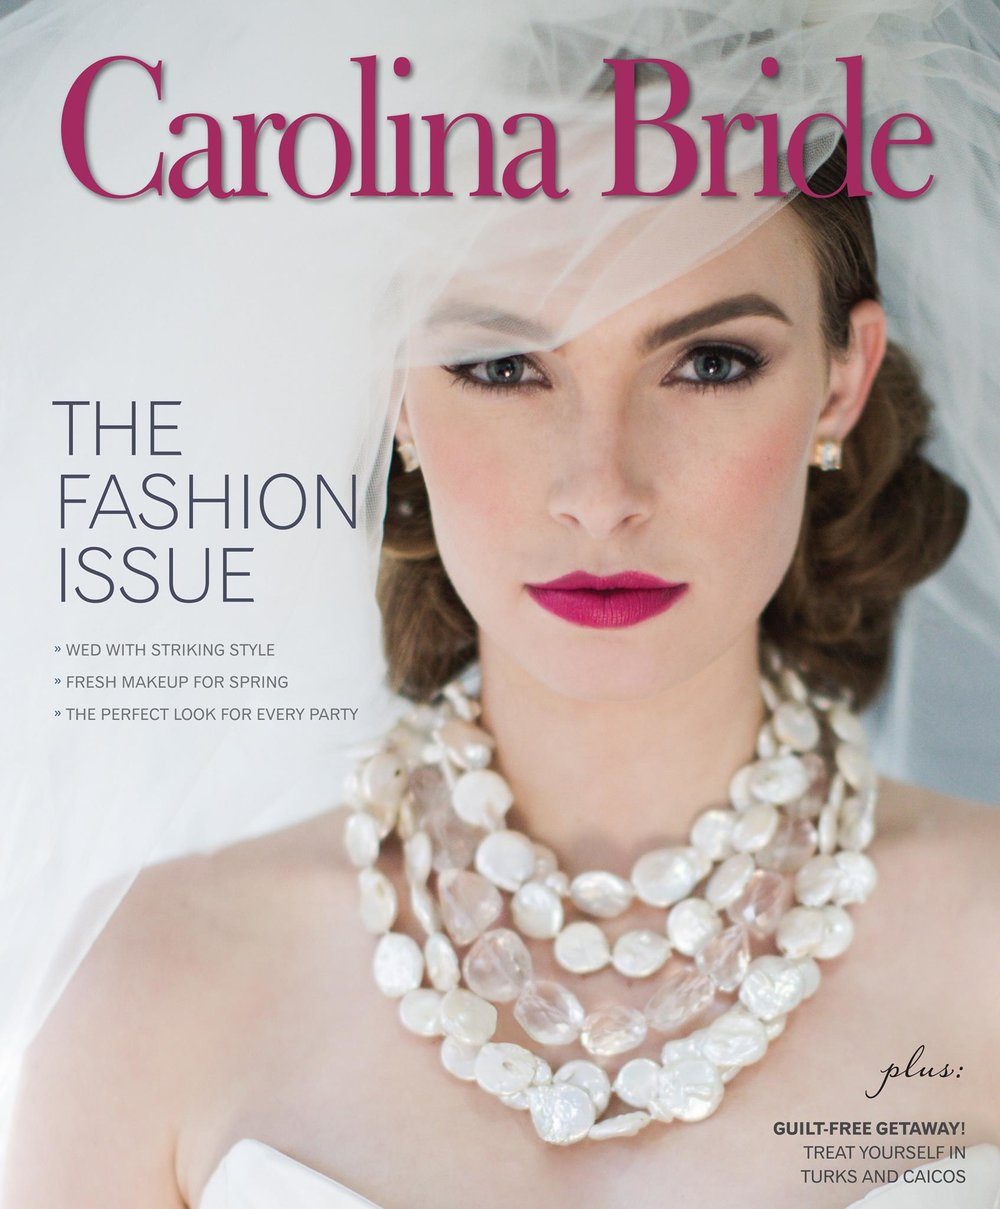 Also seen in... - Carolina Bride: The Fashion Issue